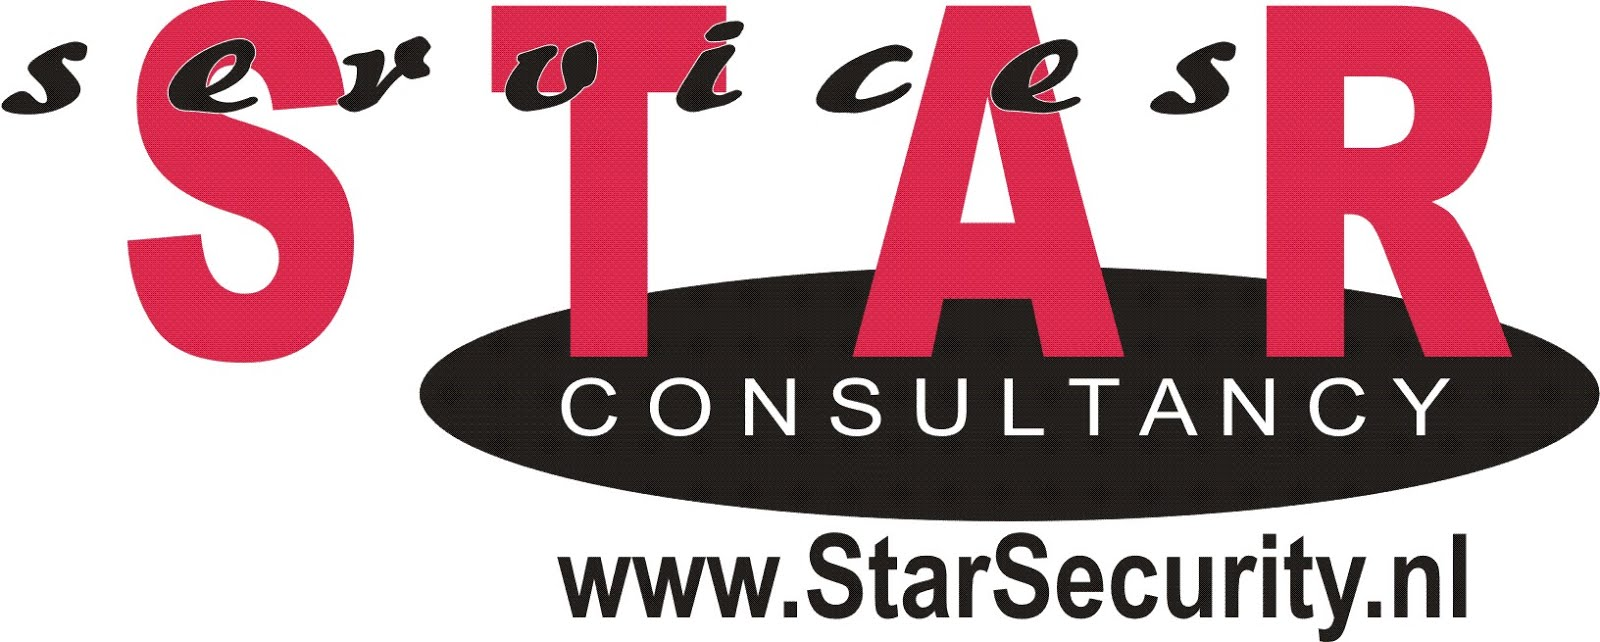 Star Services Consultancy